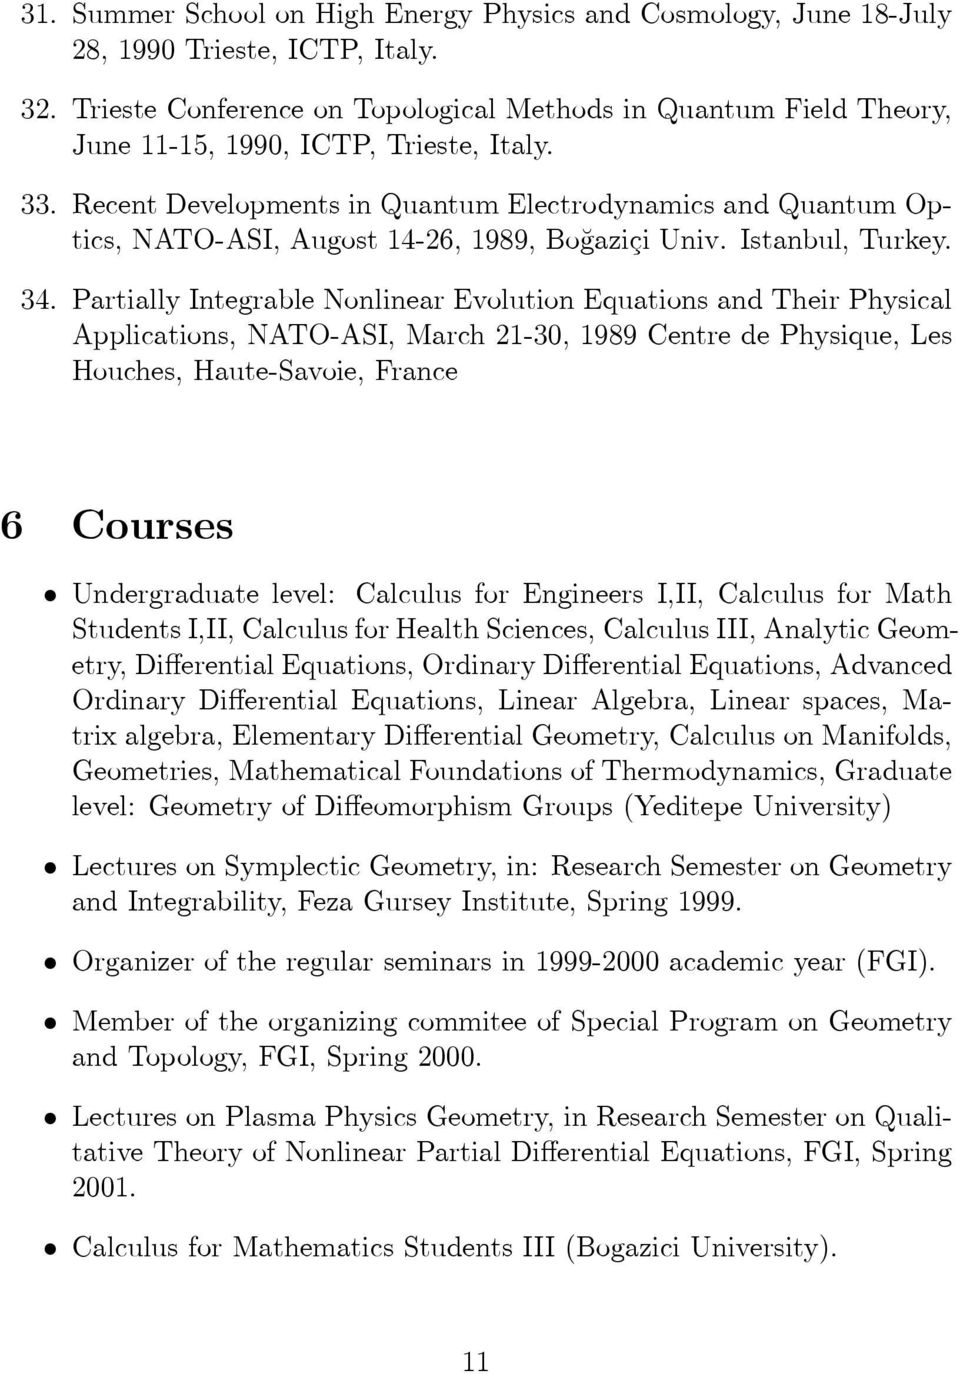 Recent Developments in Quantum Electrodynamics and Quantum Optics, NATO-ASI, Augost 14-26, 1989, Bogazici Univ. Istanbul, Turkey. 34.